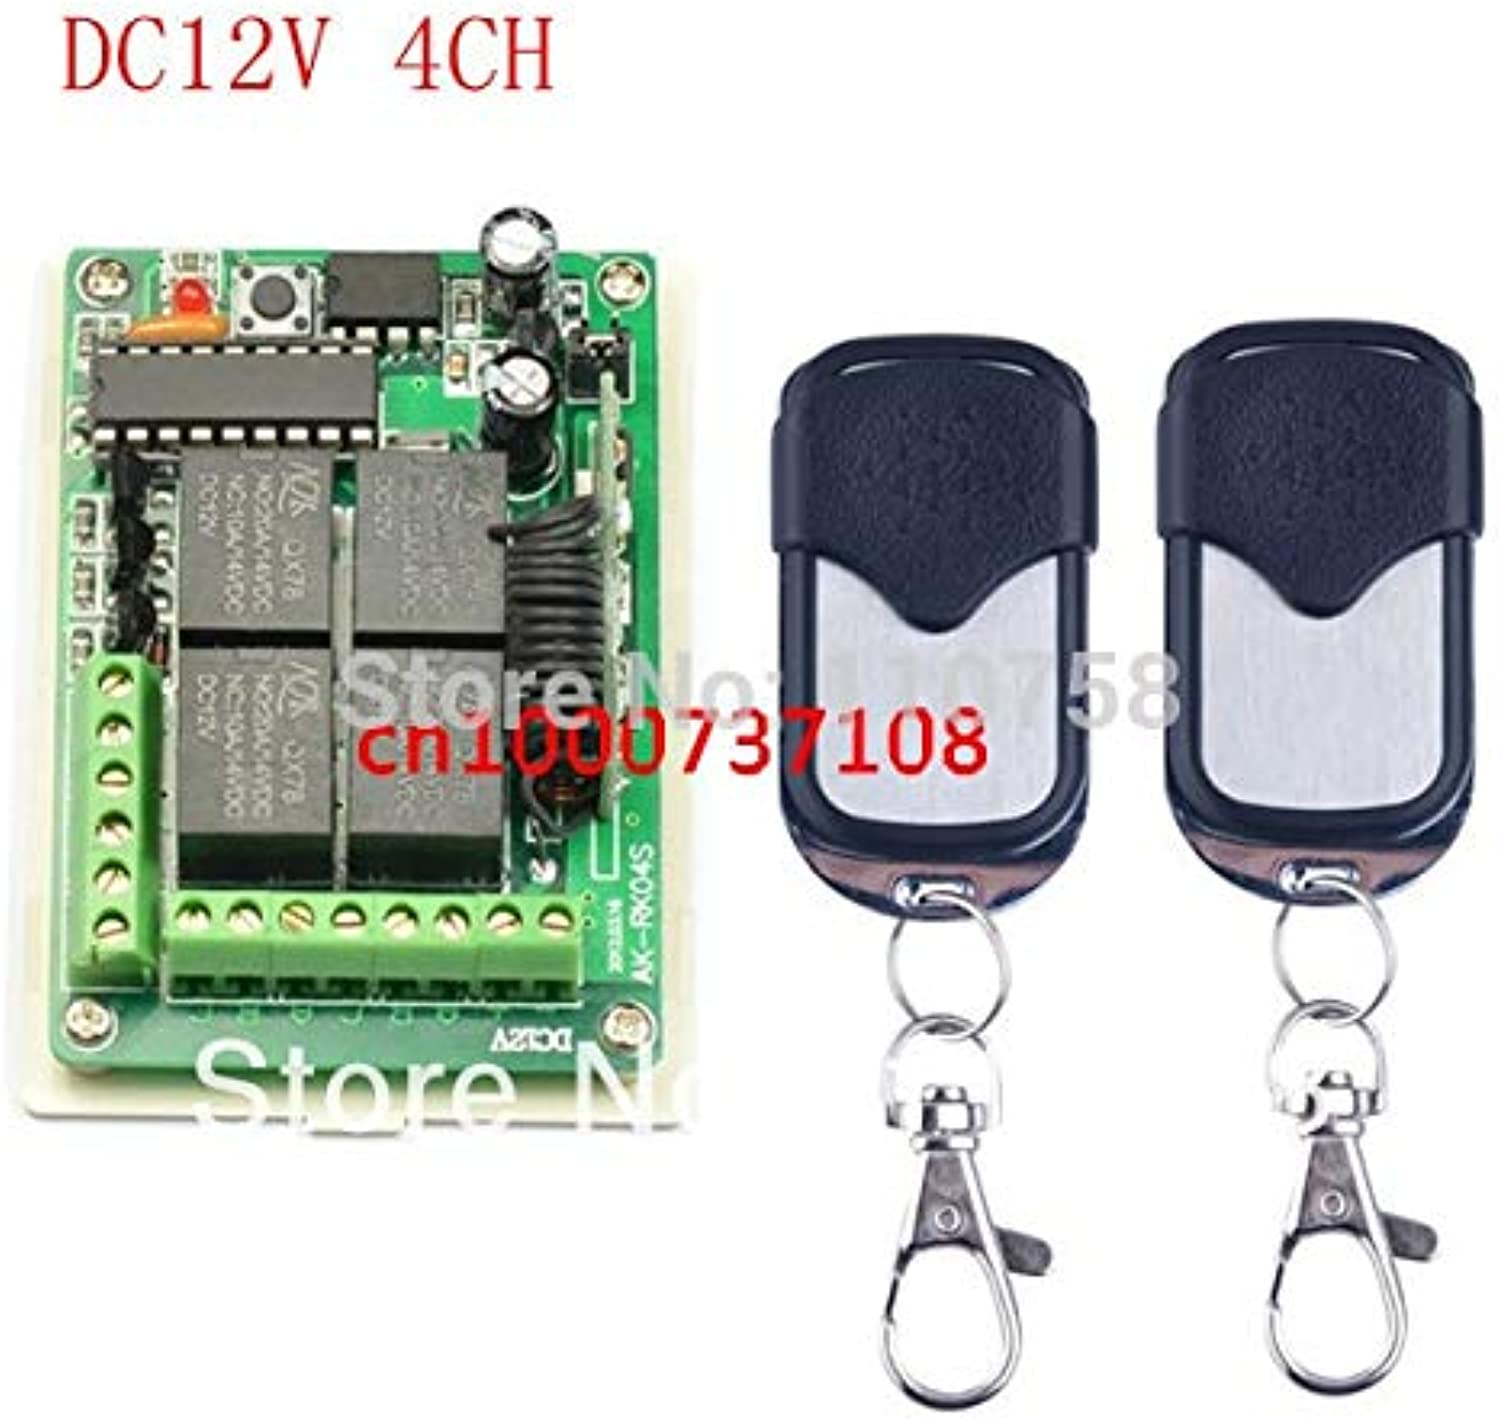 Made in AK Company DC 12V 4 CH 4CH RF TX RX,315 433 MHZ Transmitter and Receiver 315mhz  433mhz